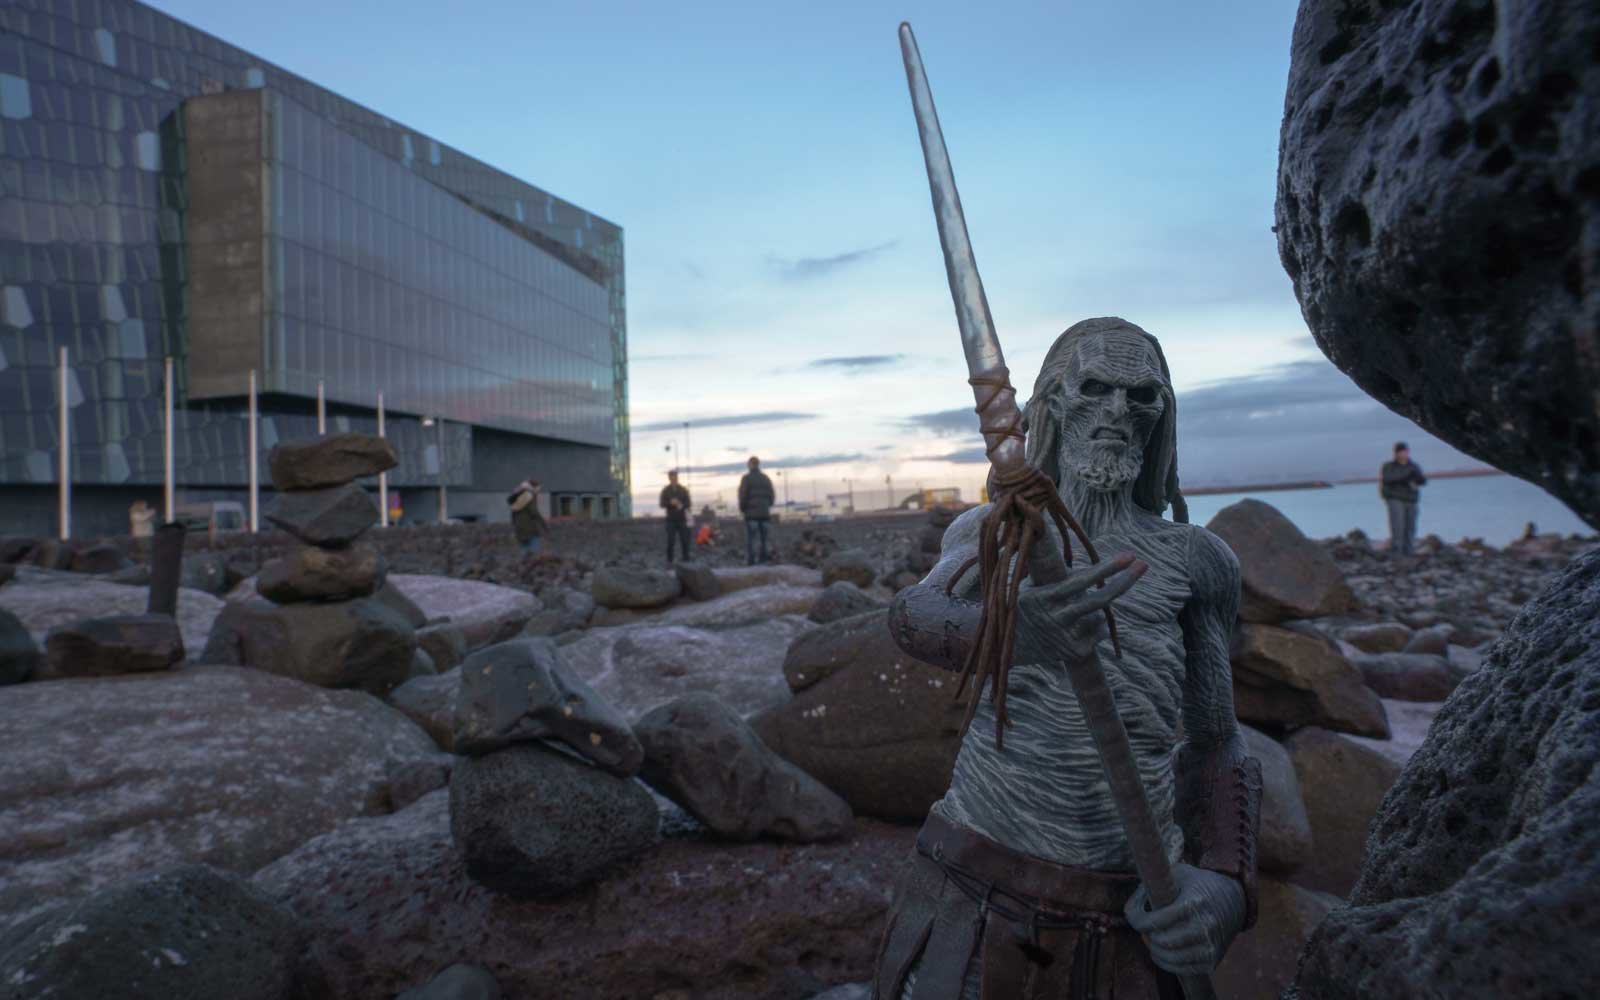 White Walker from Game of Thrones at the Icelandic Opera